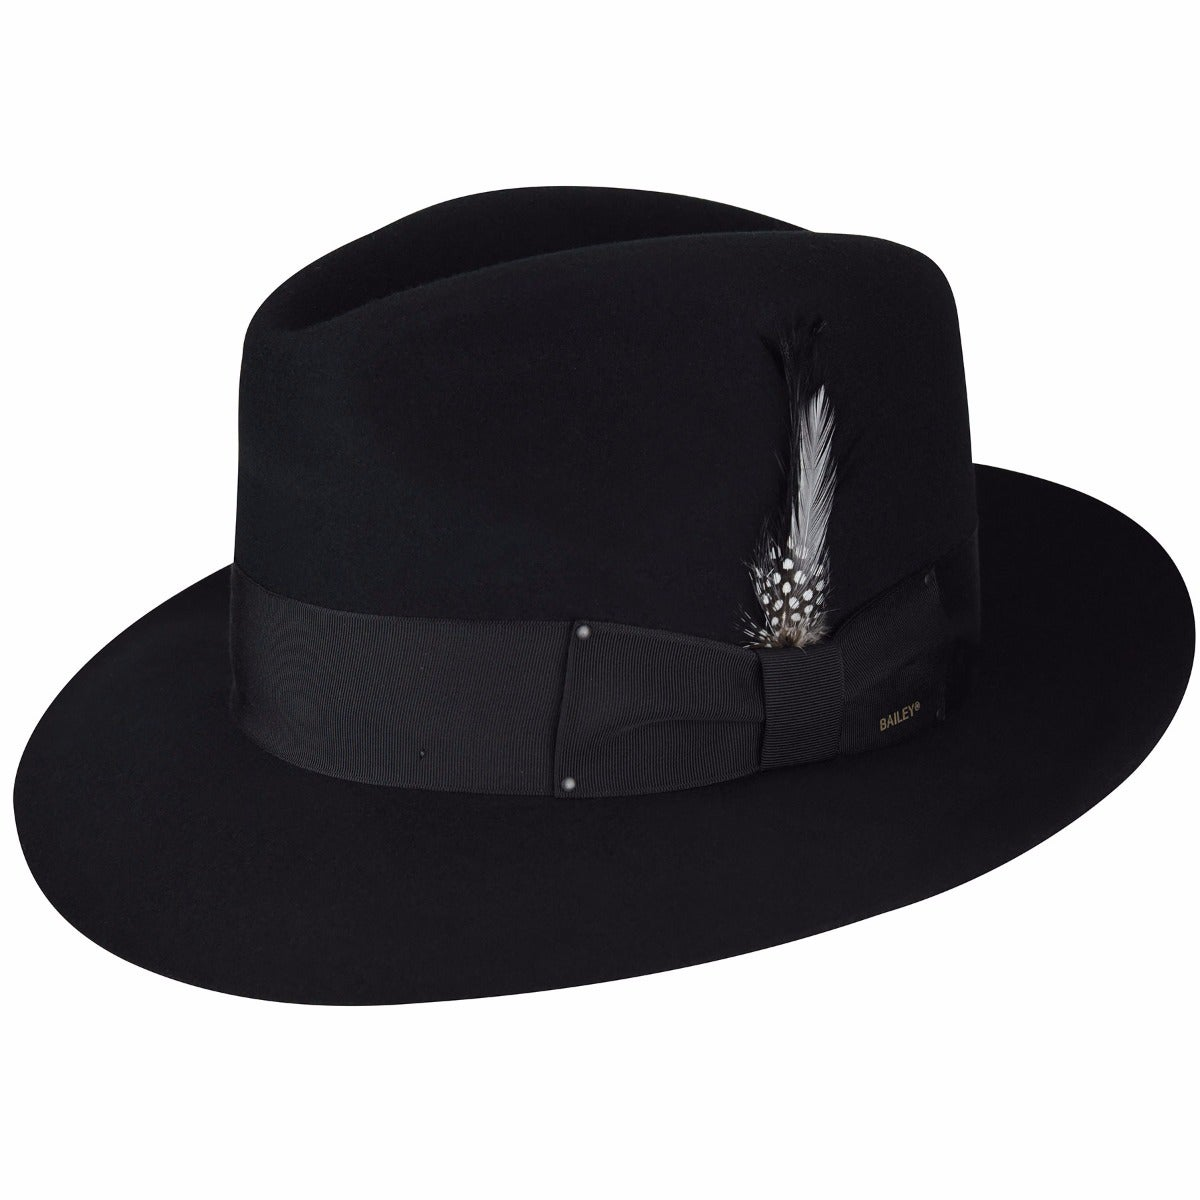 1940s Mens Hats | Fedora, Homburg, Porkpie Hats Gangster Fedora $95.00 AT vintagedancer.com